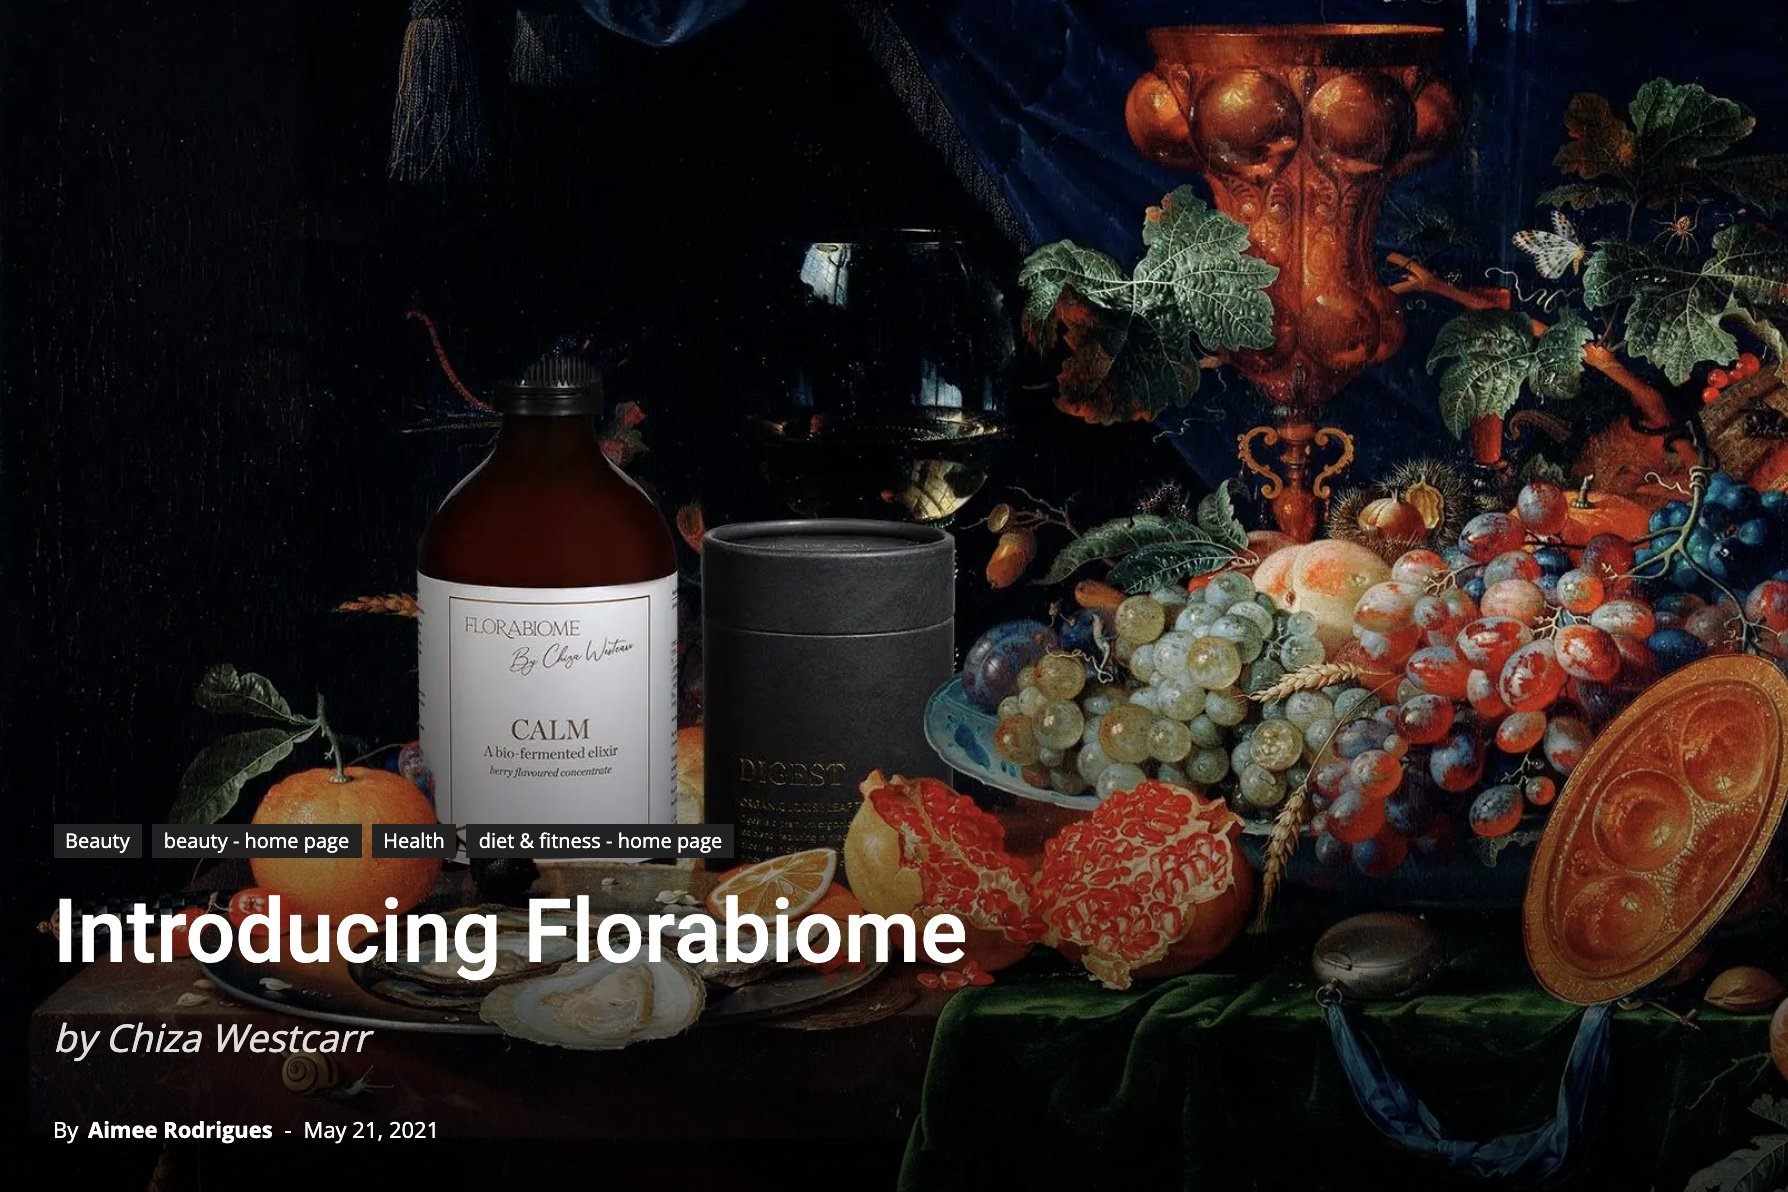 FloraBiome By Chiza Westcarr COS Beauty Magazine